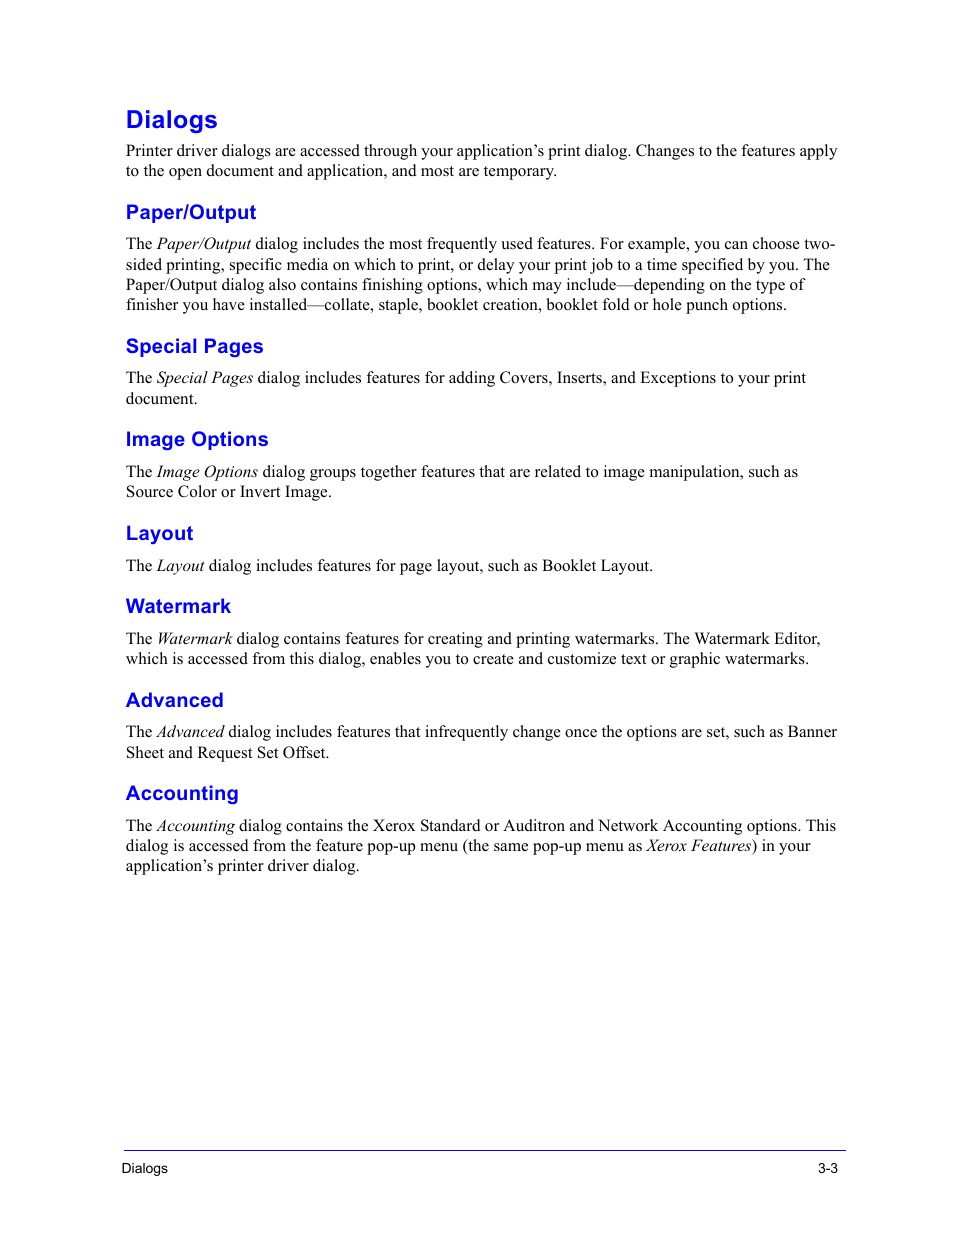 Dialogs, Paper/output, Image options | Xerox WorkCentre 7655-7665-7675-2530  User Manual | Page 17 / 32